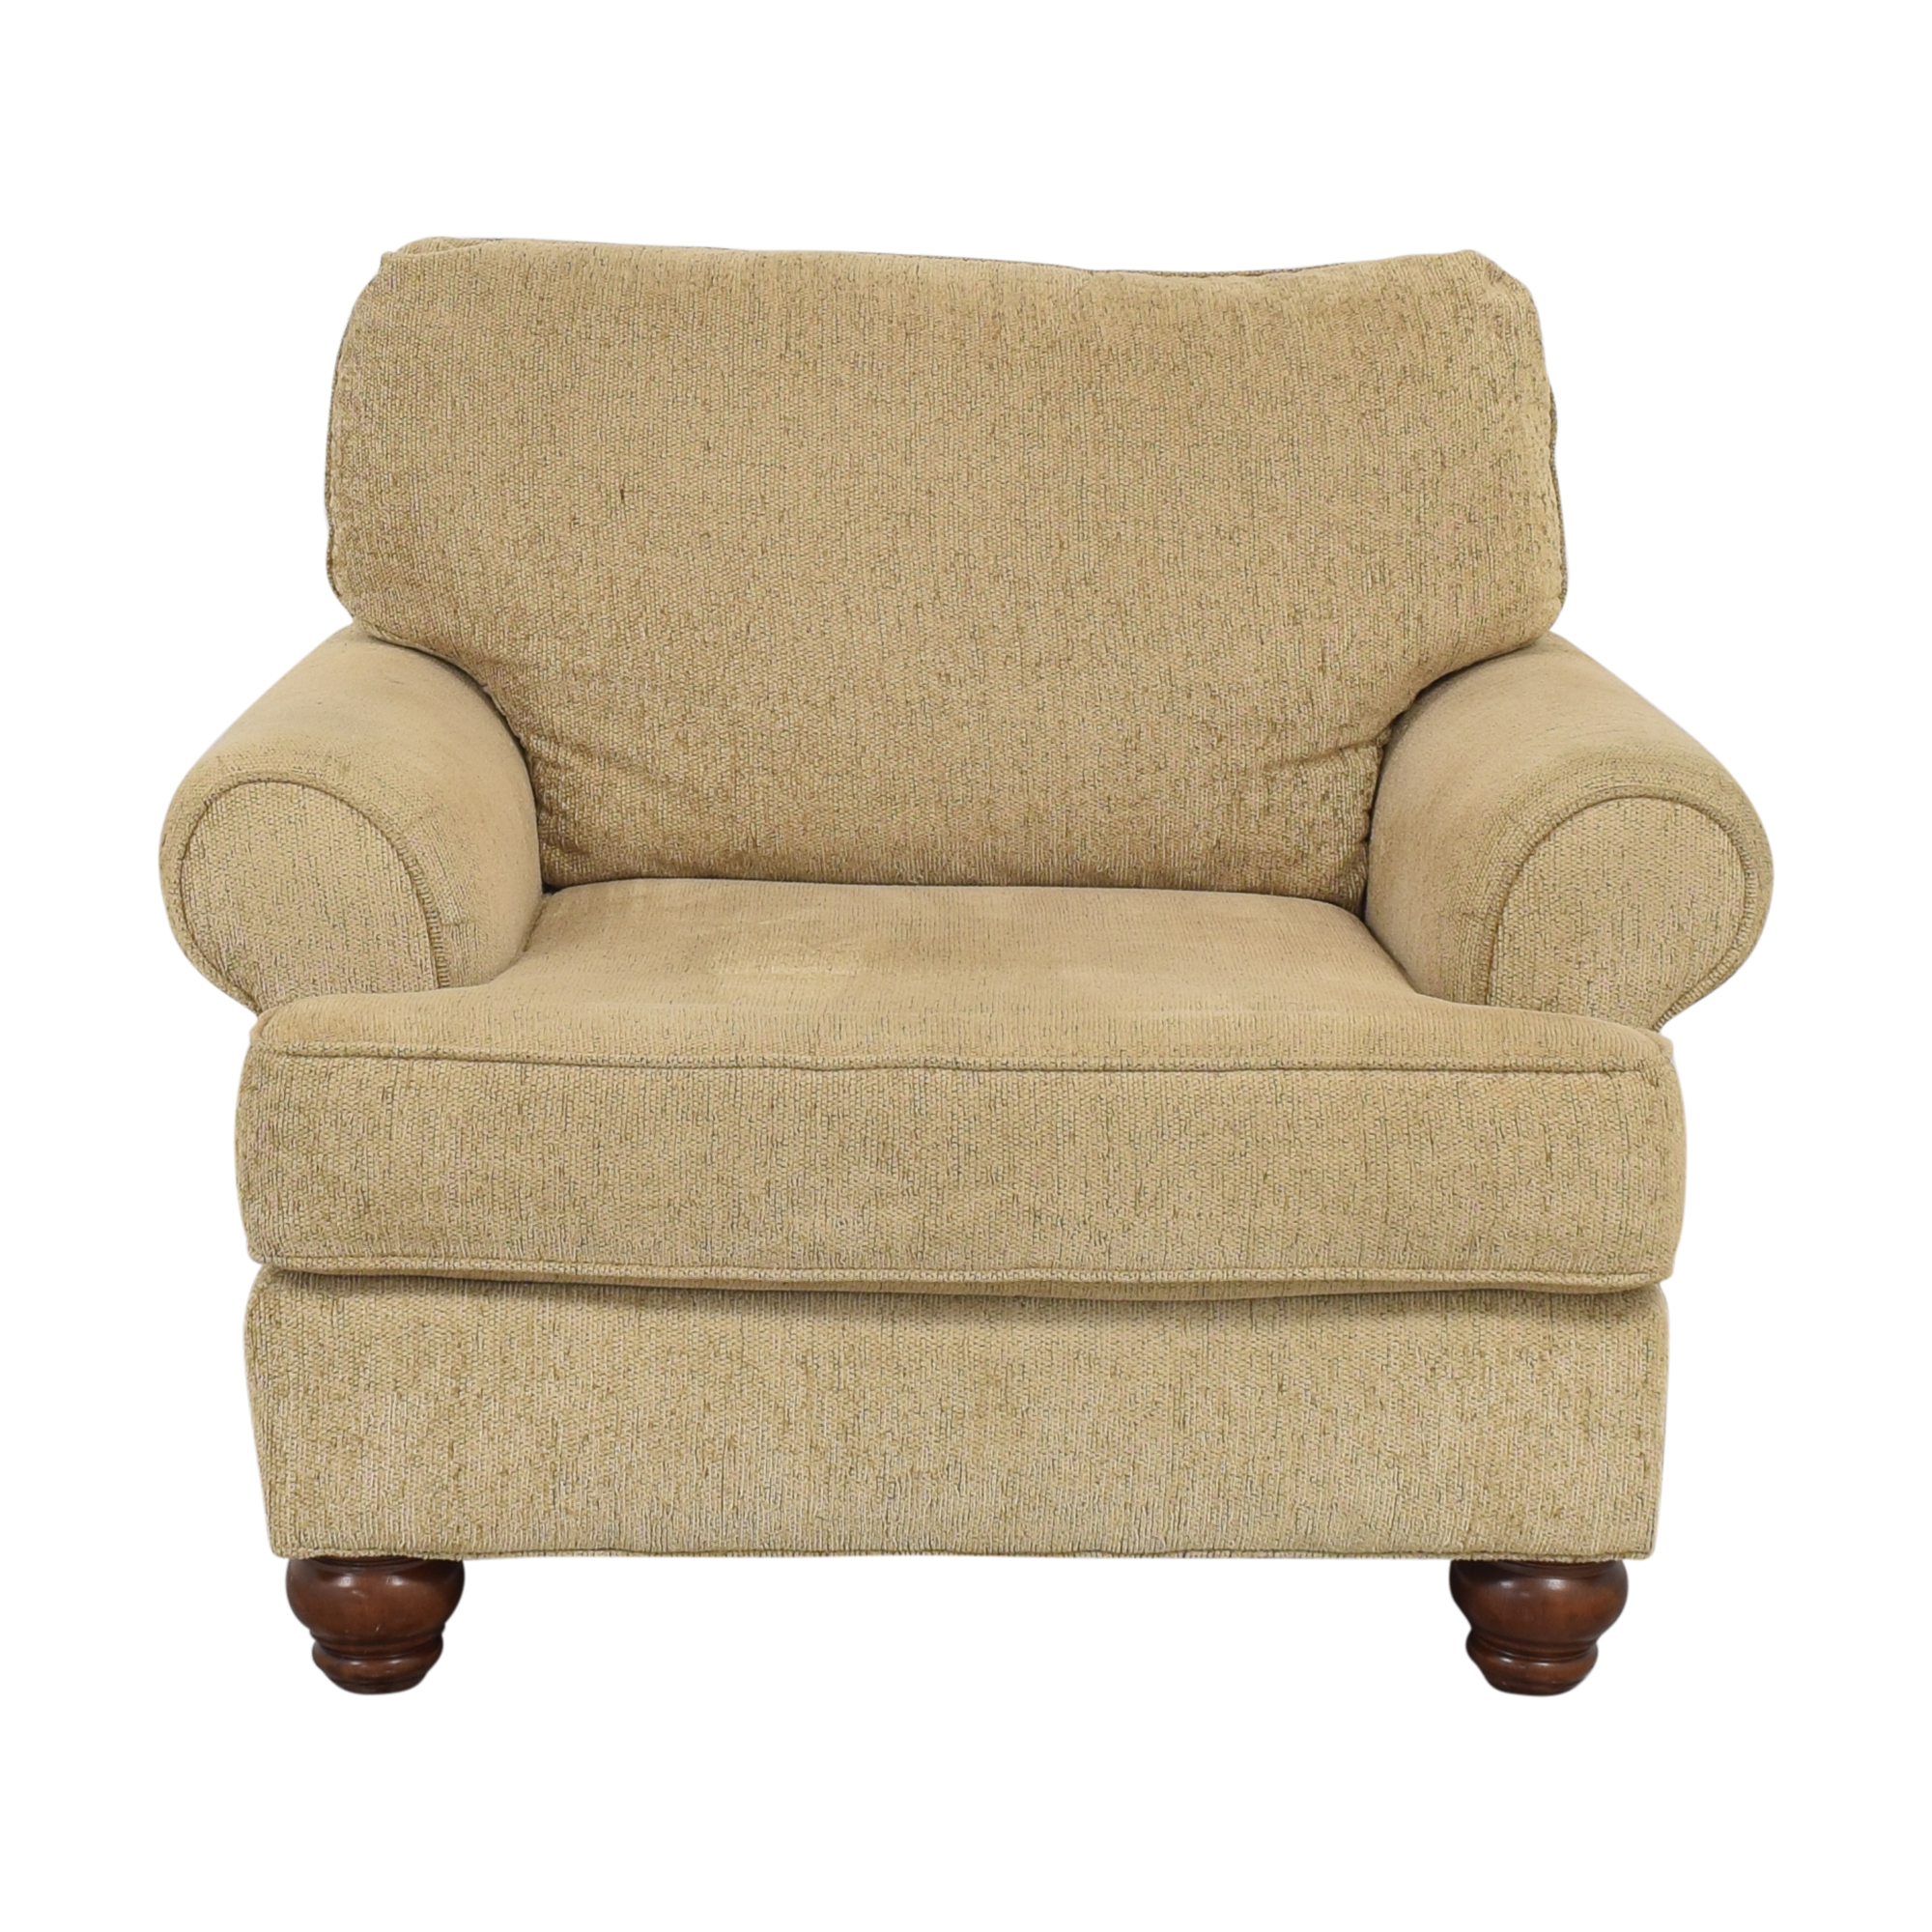 Emerald Home Furnishings Emerald Craft Armchair coupon